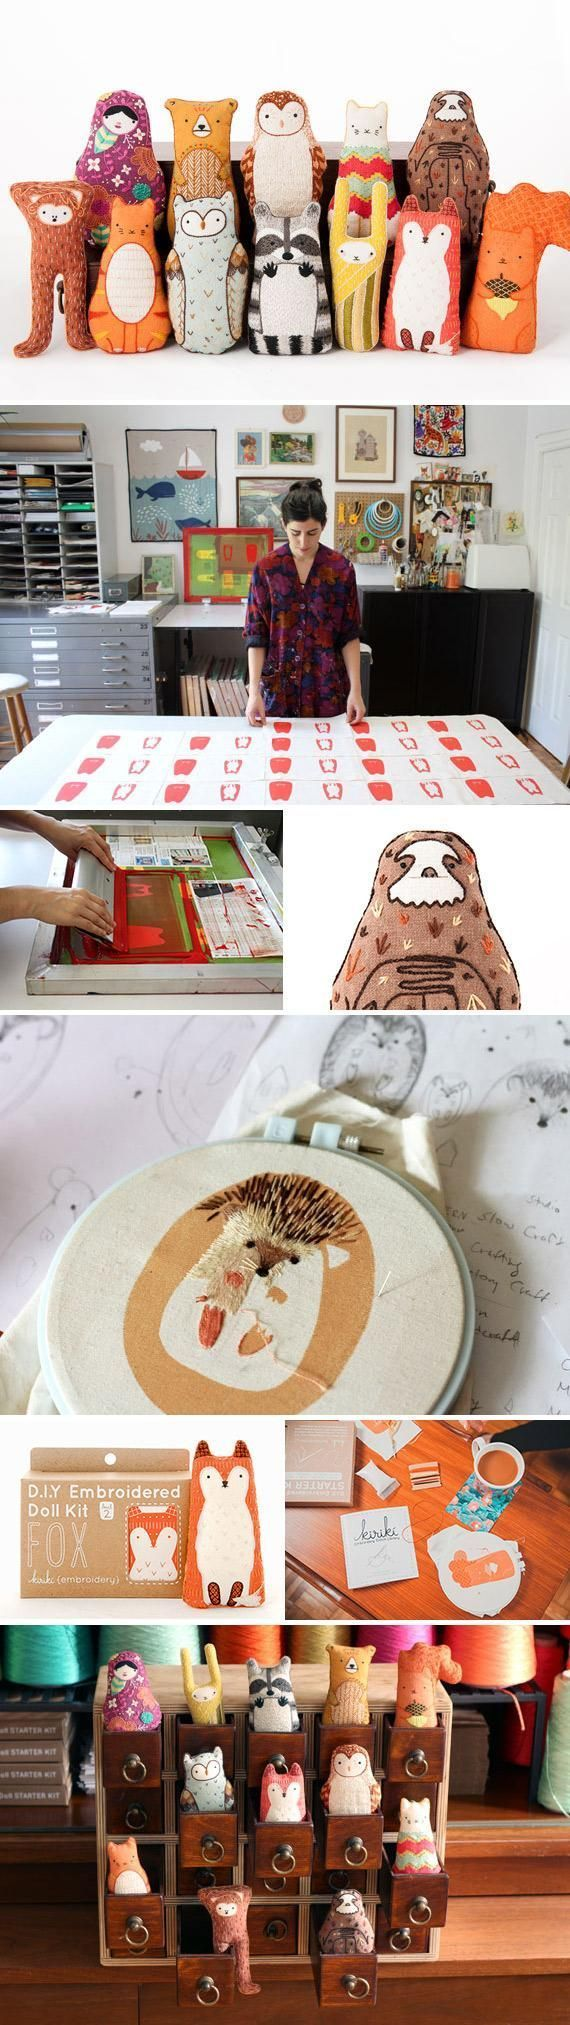 Forest Animal Frenzy!! Michelle Galletta of Etsy shop Kiriki Press dreamed up her animal doll embroidery kits when she needed to make an affordable gift for her niece and couldnt find a suitable pattern anywhere. Her printmaking background made the proje